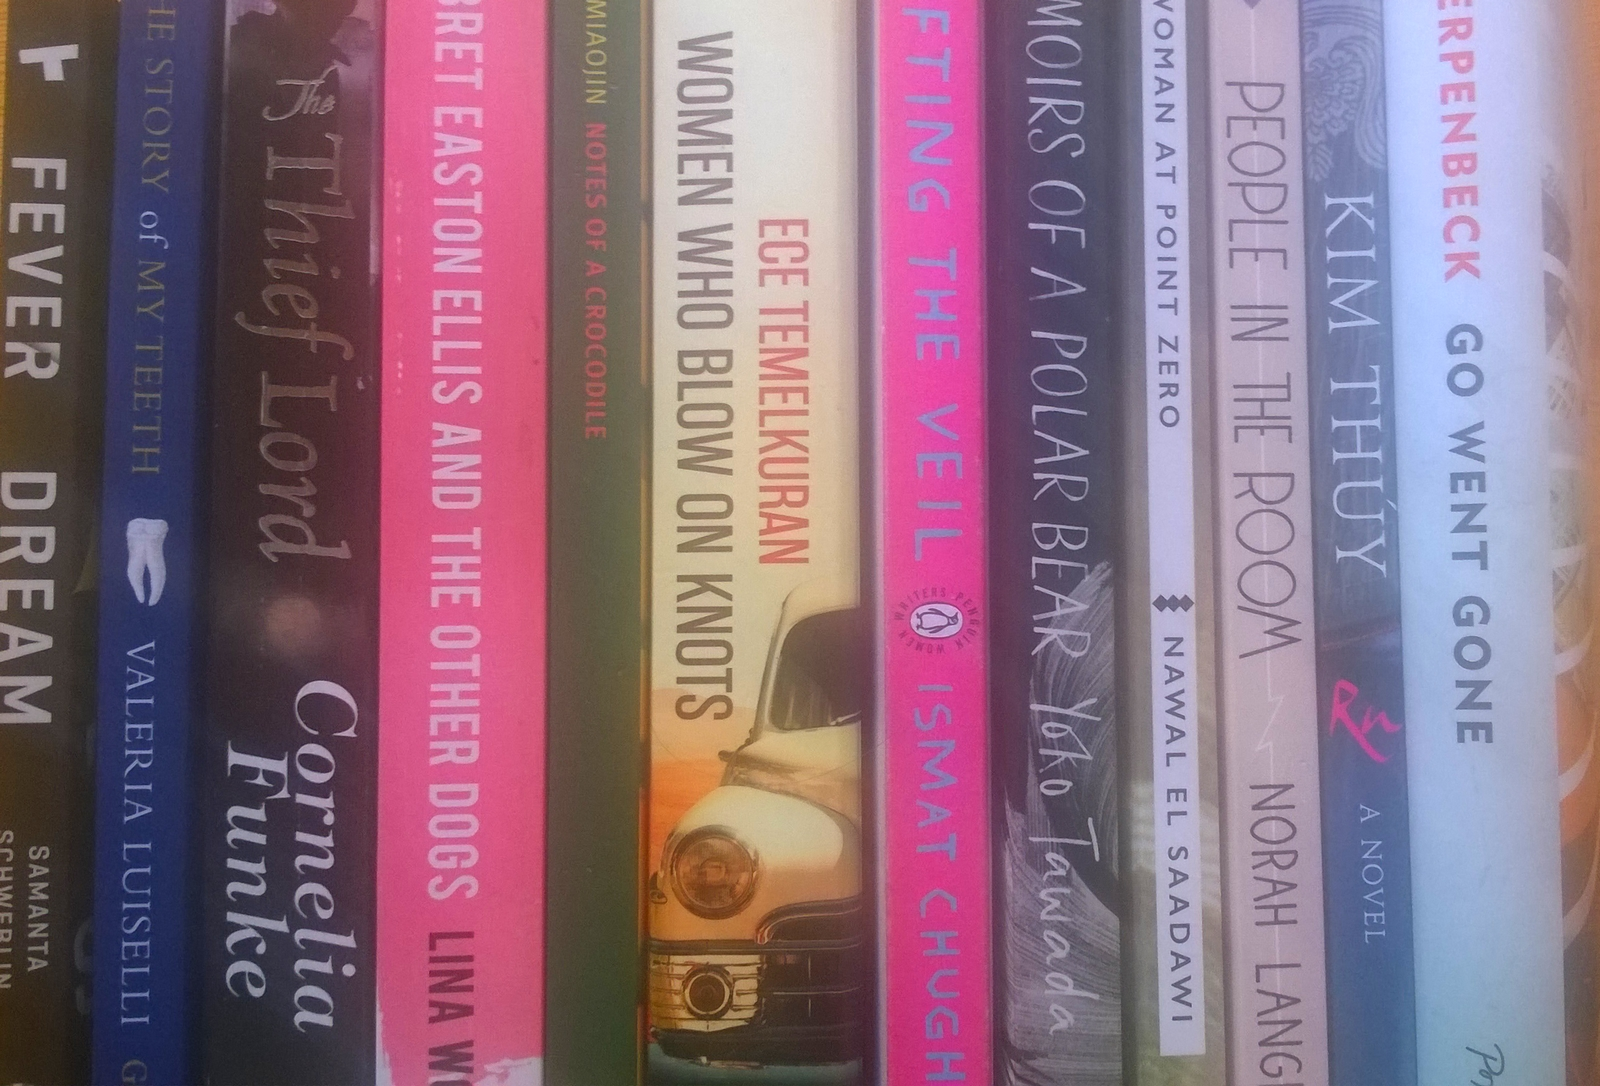 Row of books, all by female authors in translation